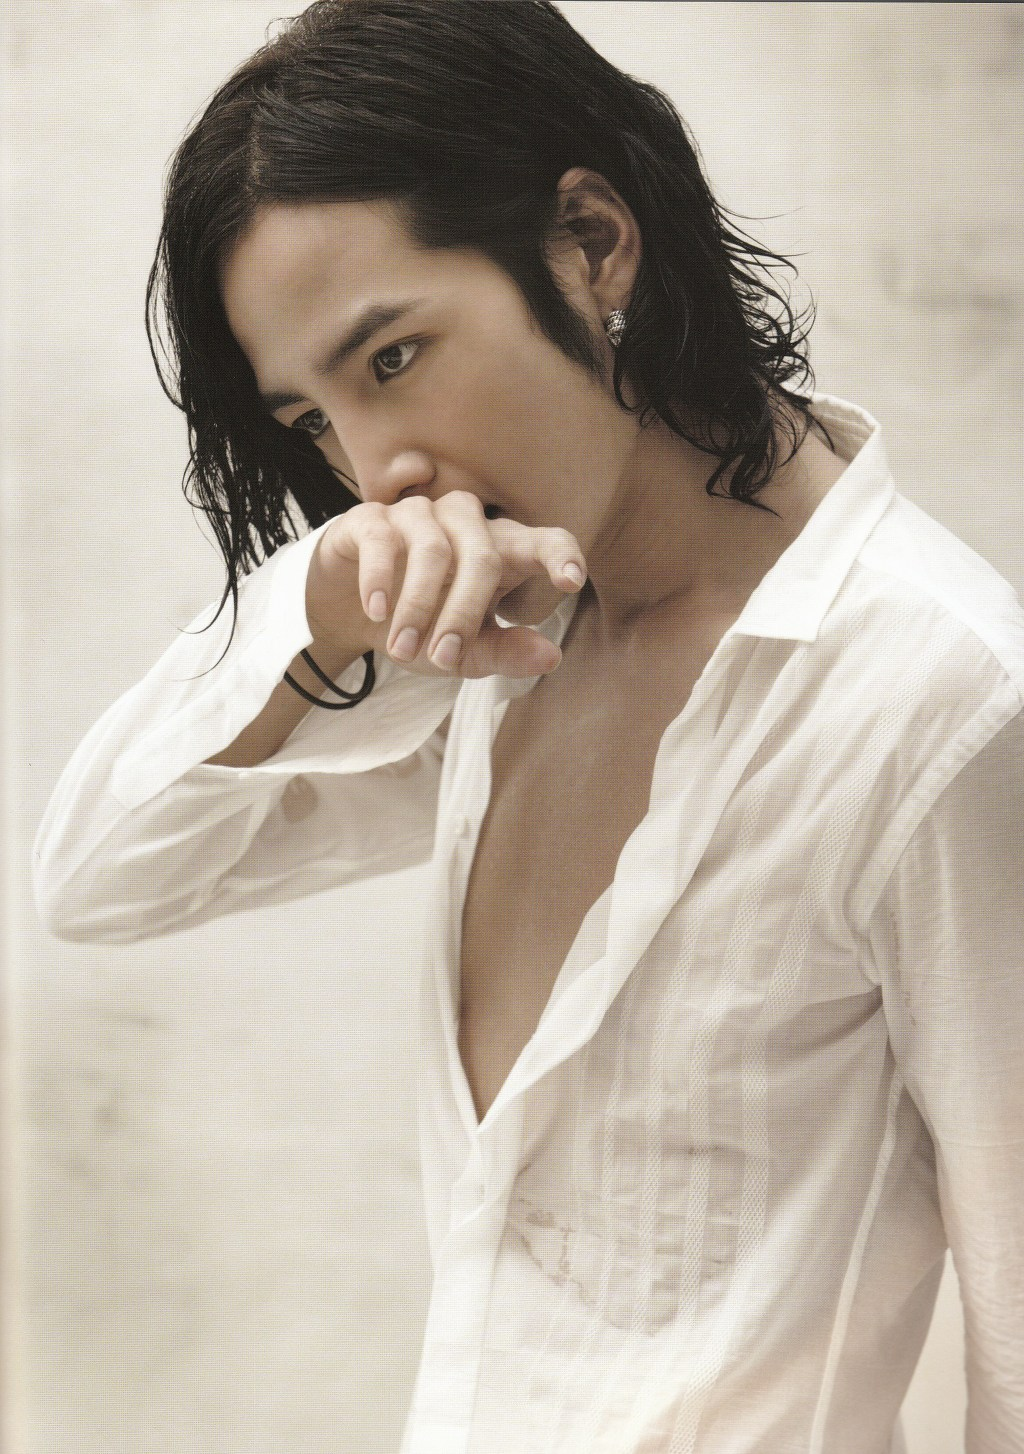 Pop The Pig Big W Jang Geun Suk Korean Pop Pic